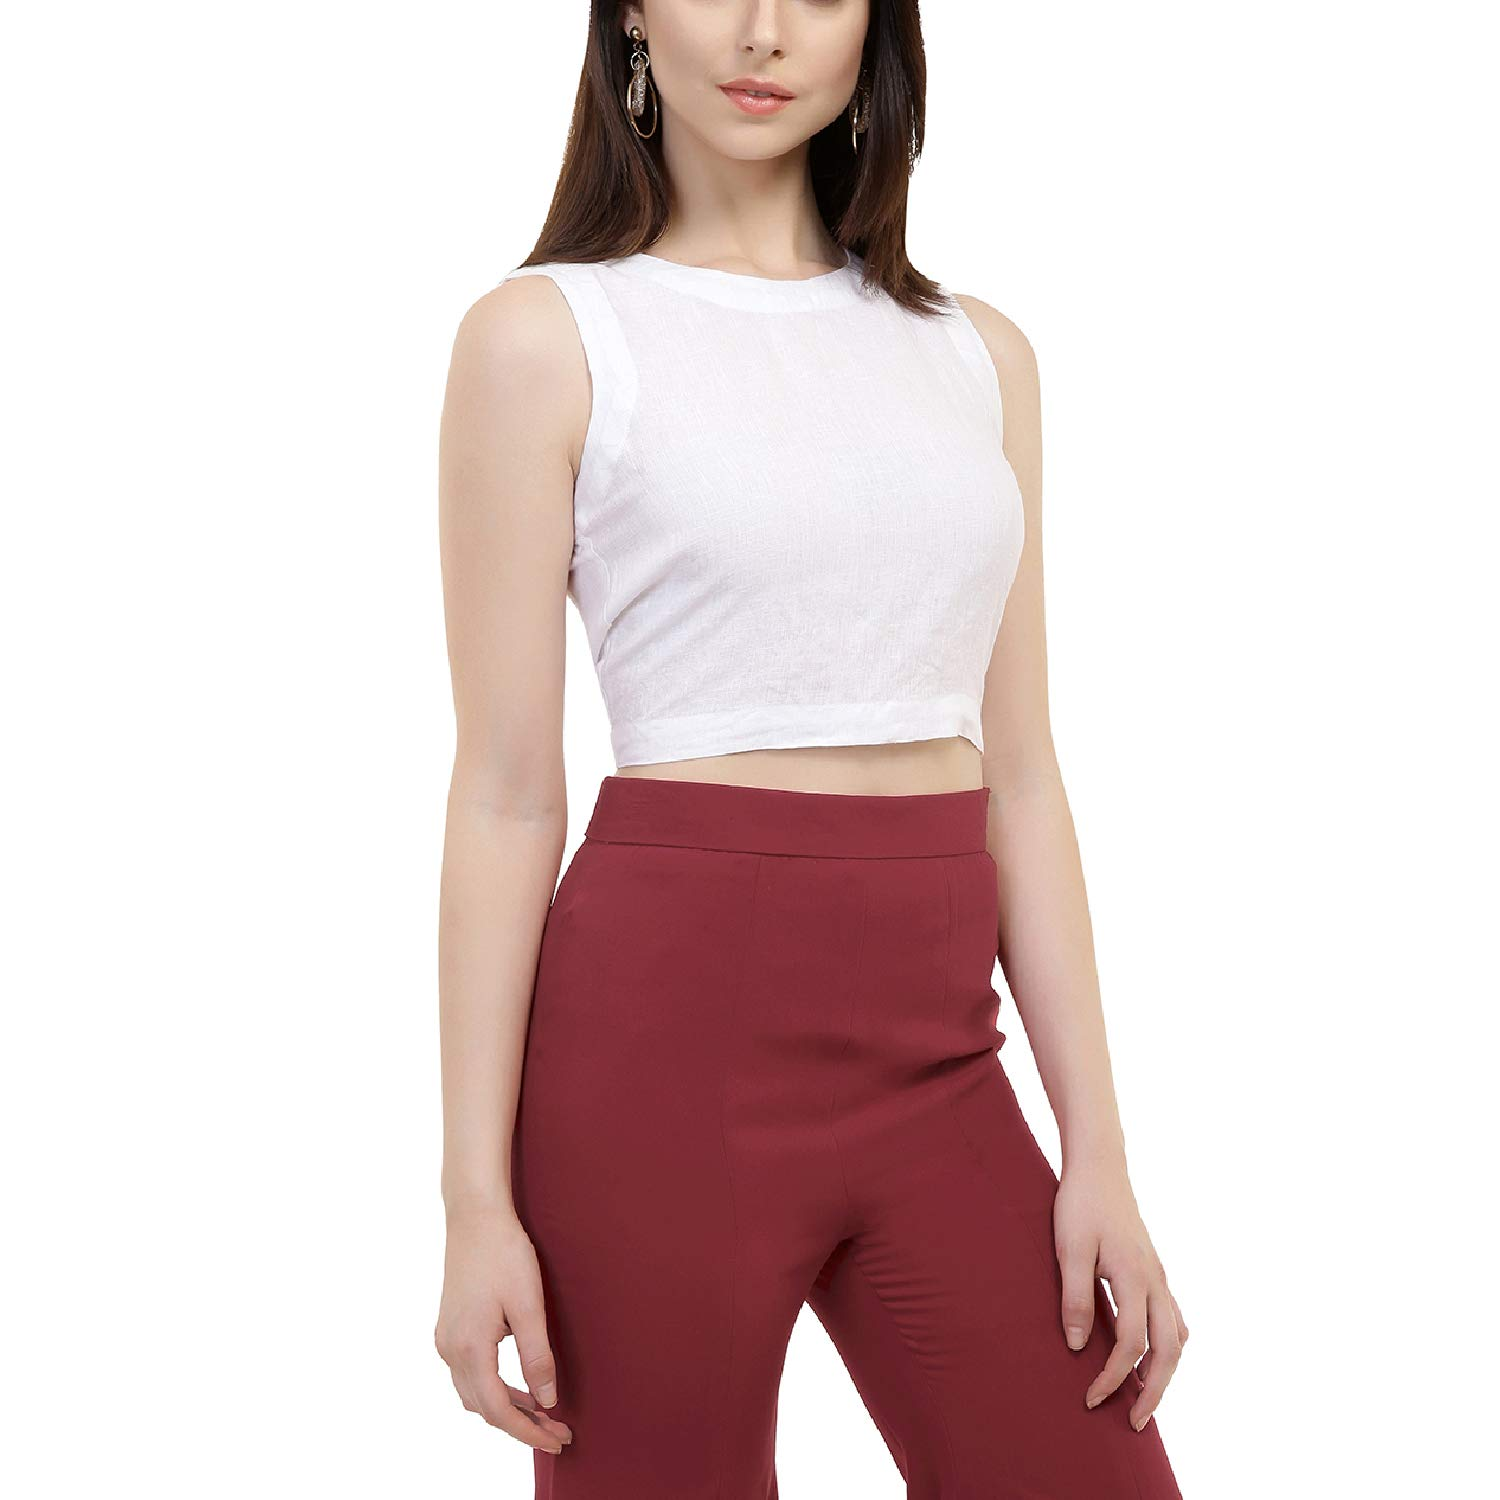 8f08dc396d205d Ashtag White Linen Crop Top  Amazon.in  Clothing   Accessories